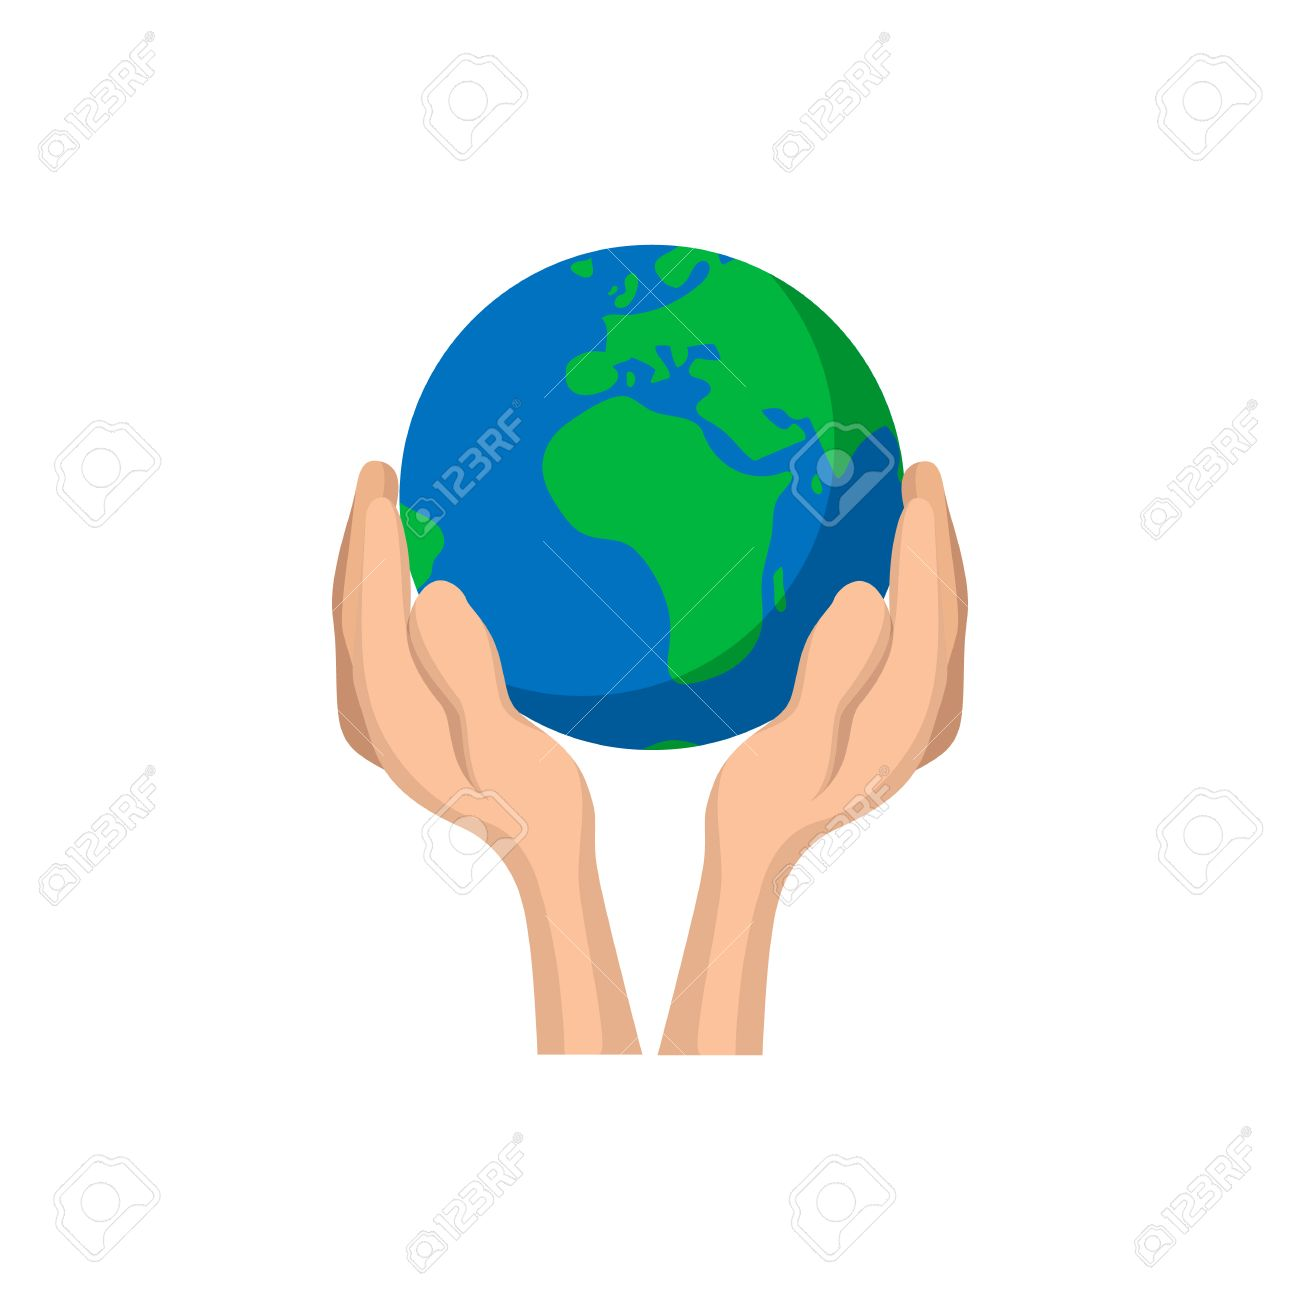 Hands Holding Globe Cartoon Icon Save Earth Concept Symbol On